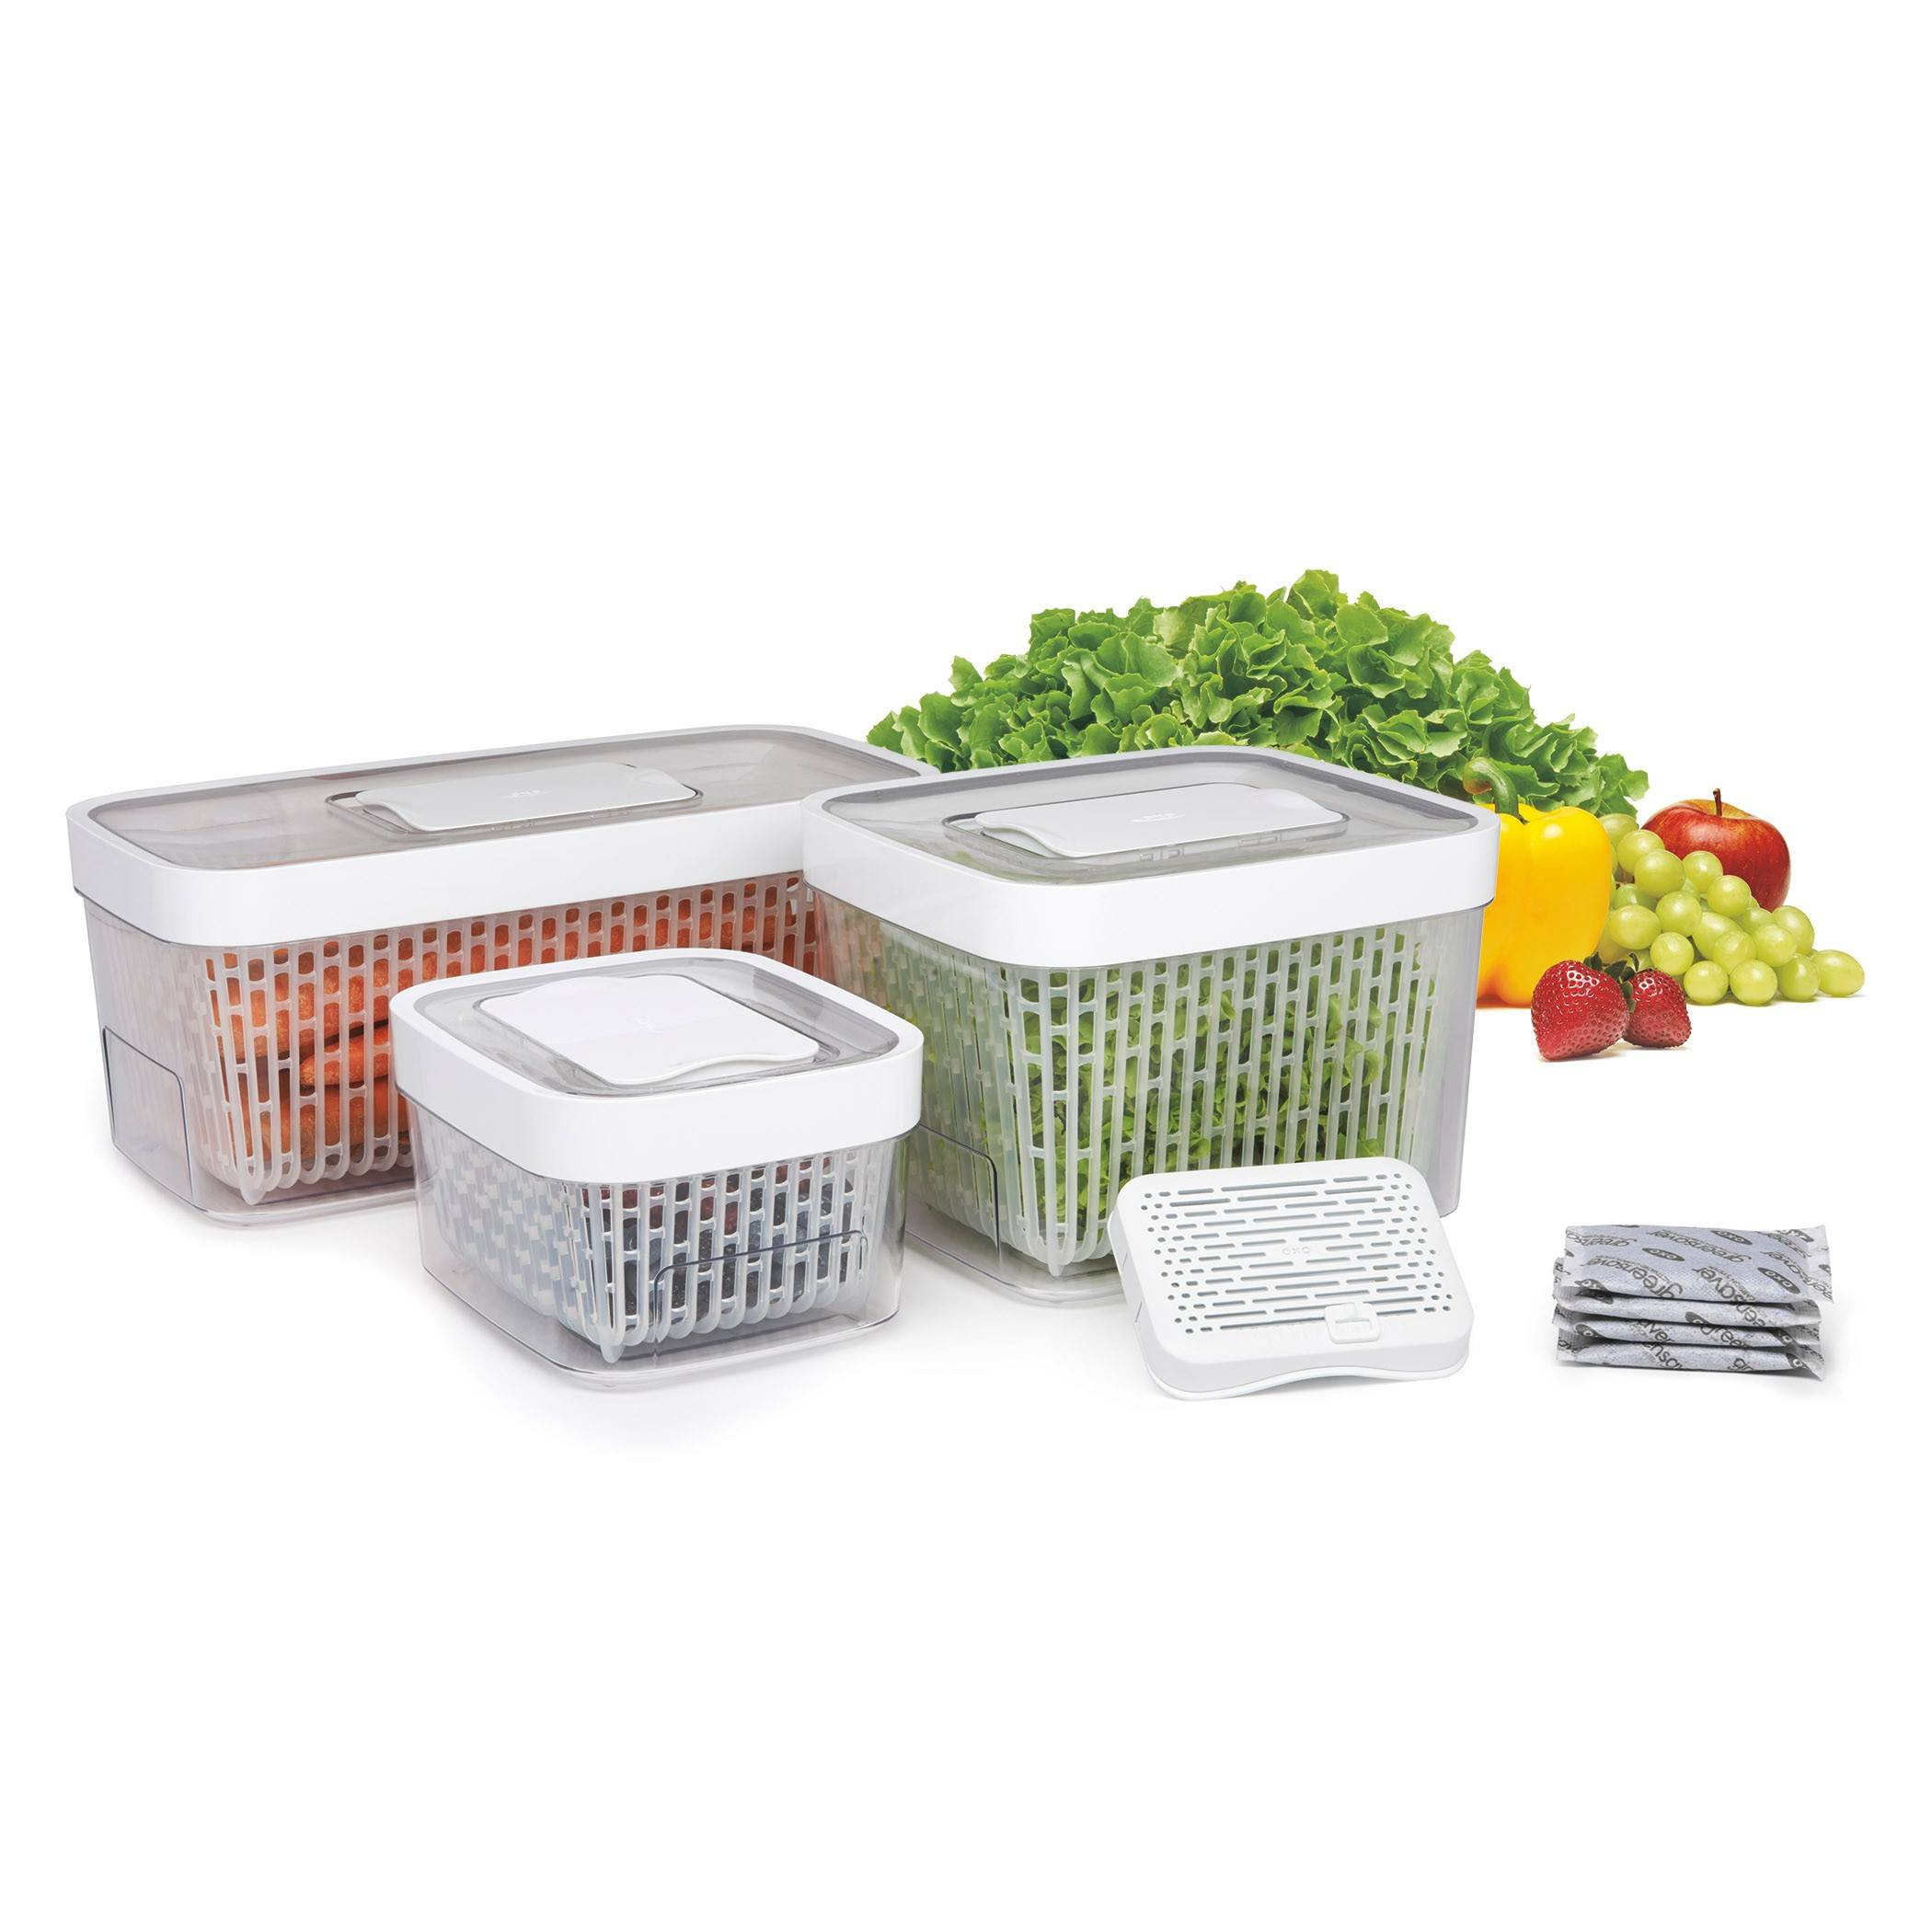 Keep it: A carbon packet that fits into the lid counteracts the gases that cause produce to wilt and over ripen in OXO's new line of GreenSaver Produce Keepers. The three-piece units feature a colander insert that allows air circulation, a sliding guard that can limit airflow and a guide to tell you how much airflow is appropriate for the most popular produce. Have turnips or papaya in your GreenSaver? Head to the OXO website for advice. Filters last 90 days. $14.99 (1.6 quart), $19.99 (4.3 quart), $24.99 (5 quart). Available in April at Bed, Bath and Beyond and specialty kitchen stores.